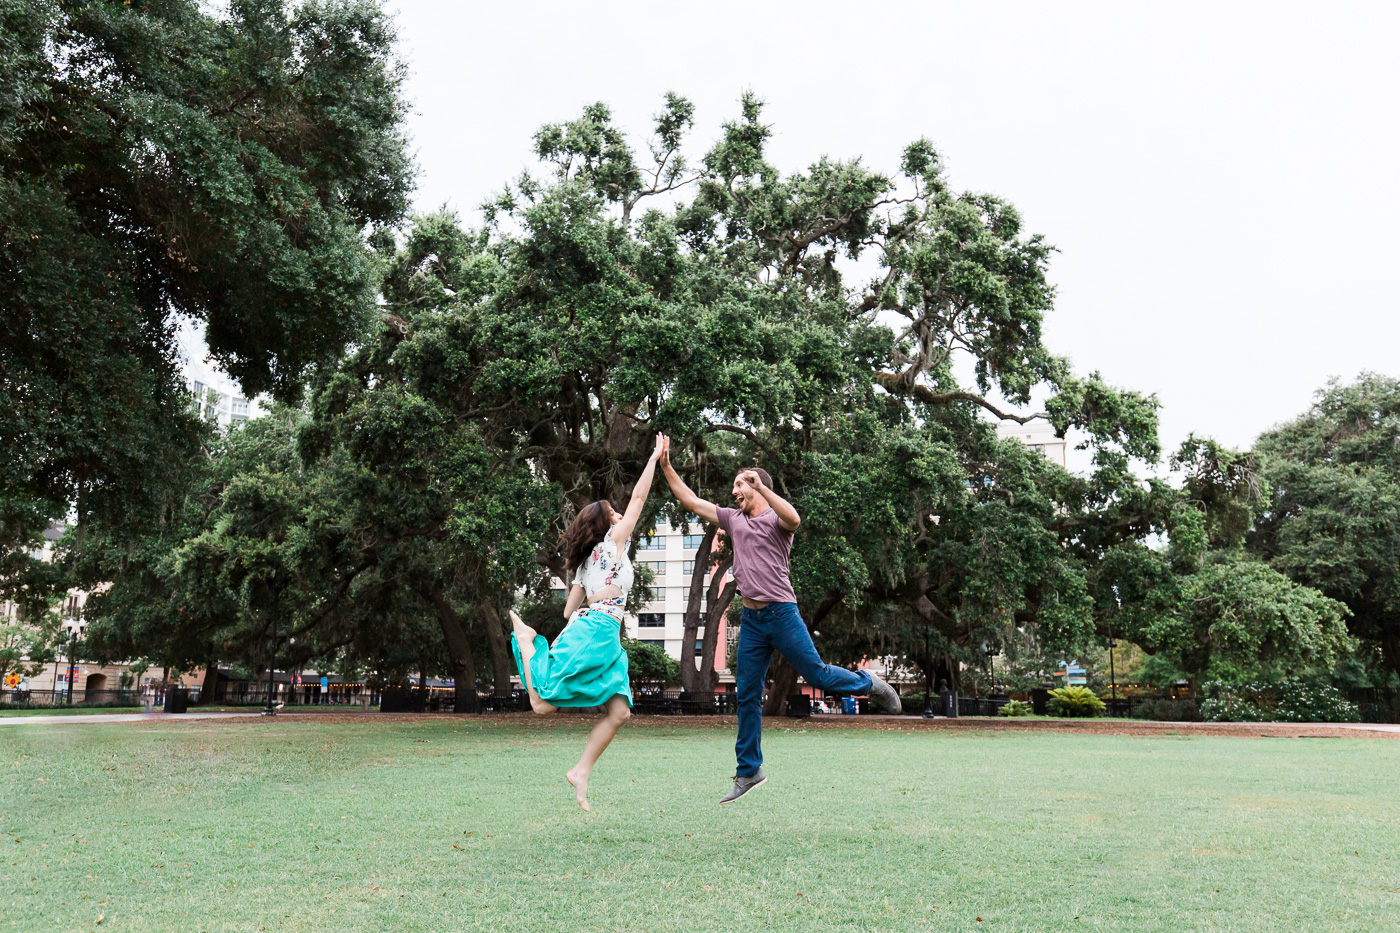 fun-engagement-photo-ideas-3.jpg